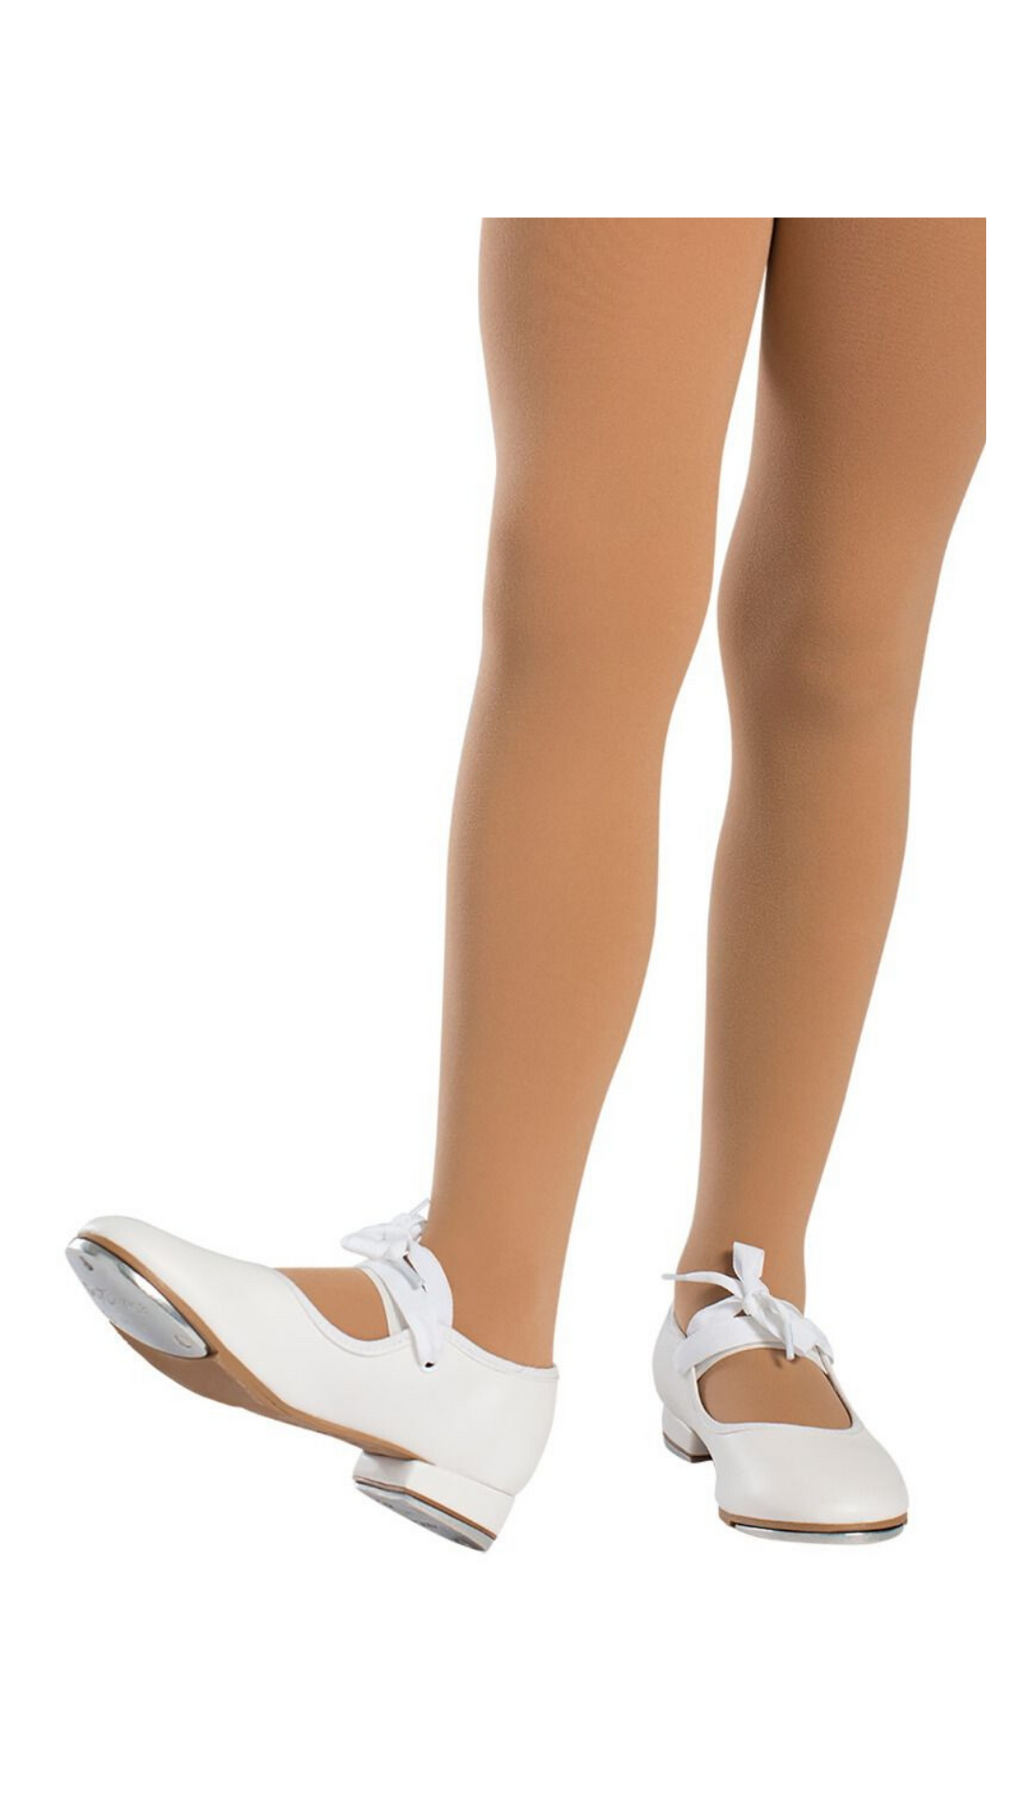 Val Tie and Snap Tap Shoe TA36-Adult (White) | (ONLINE ONLY PRICING)